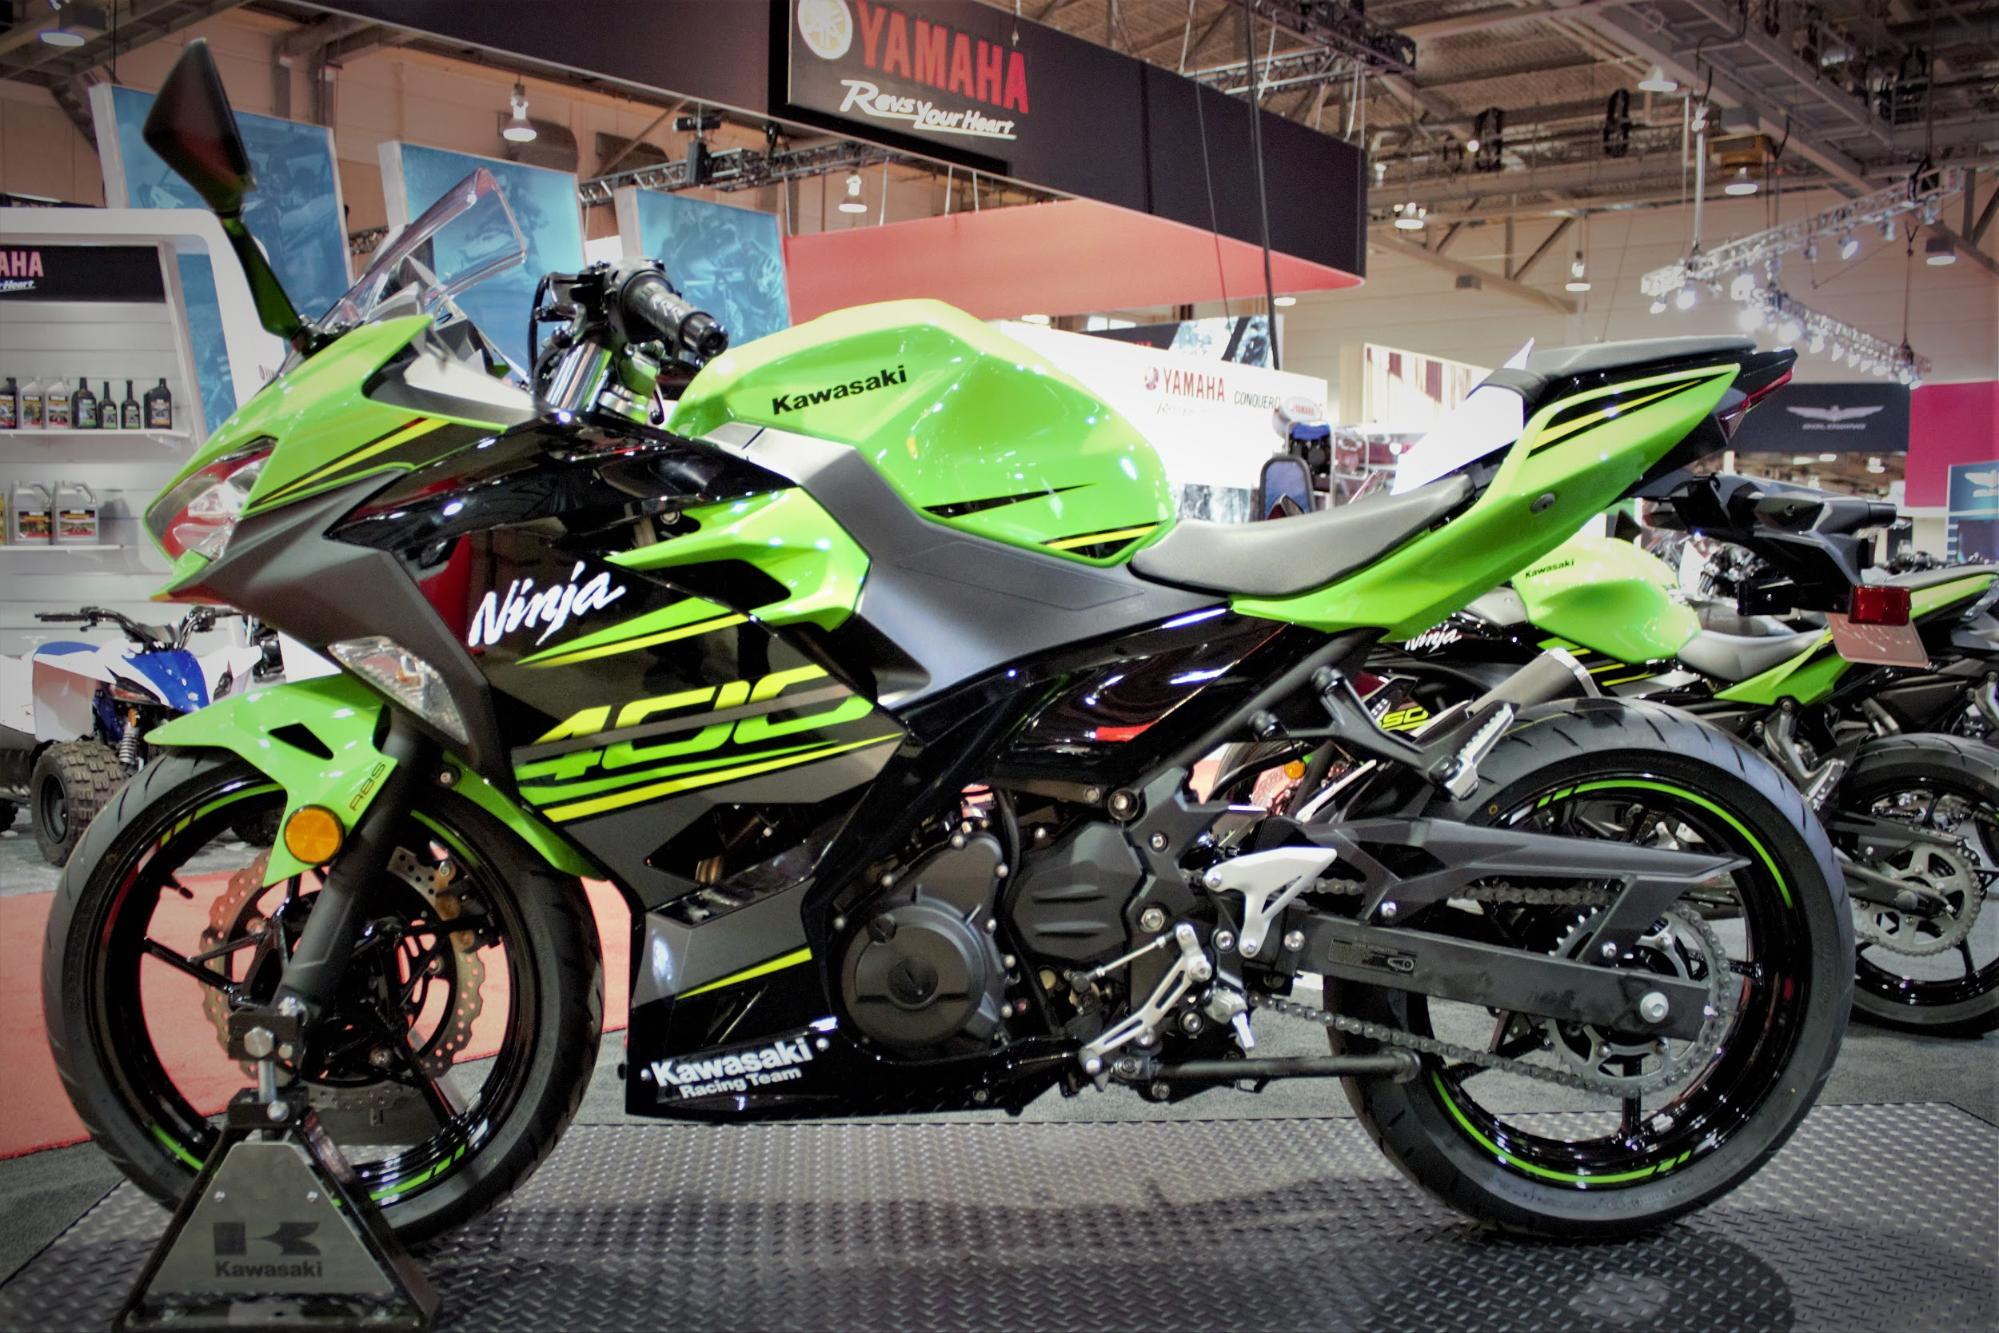 2018 Kawasaki 400 Ninja Review It Lives Up To The Hype